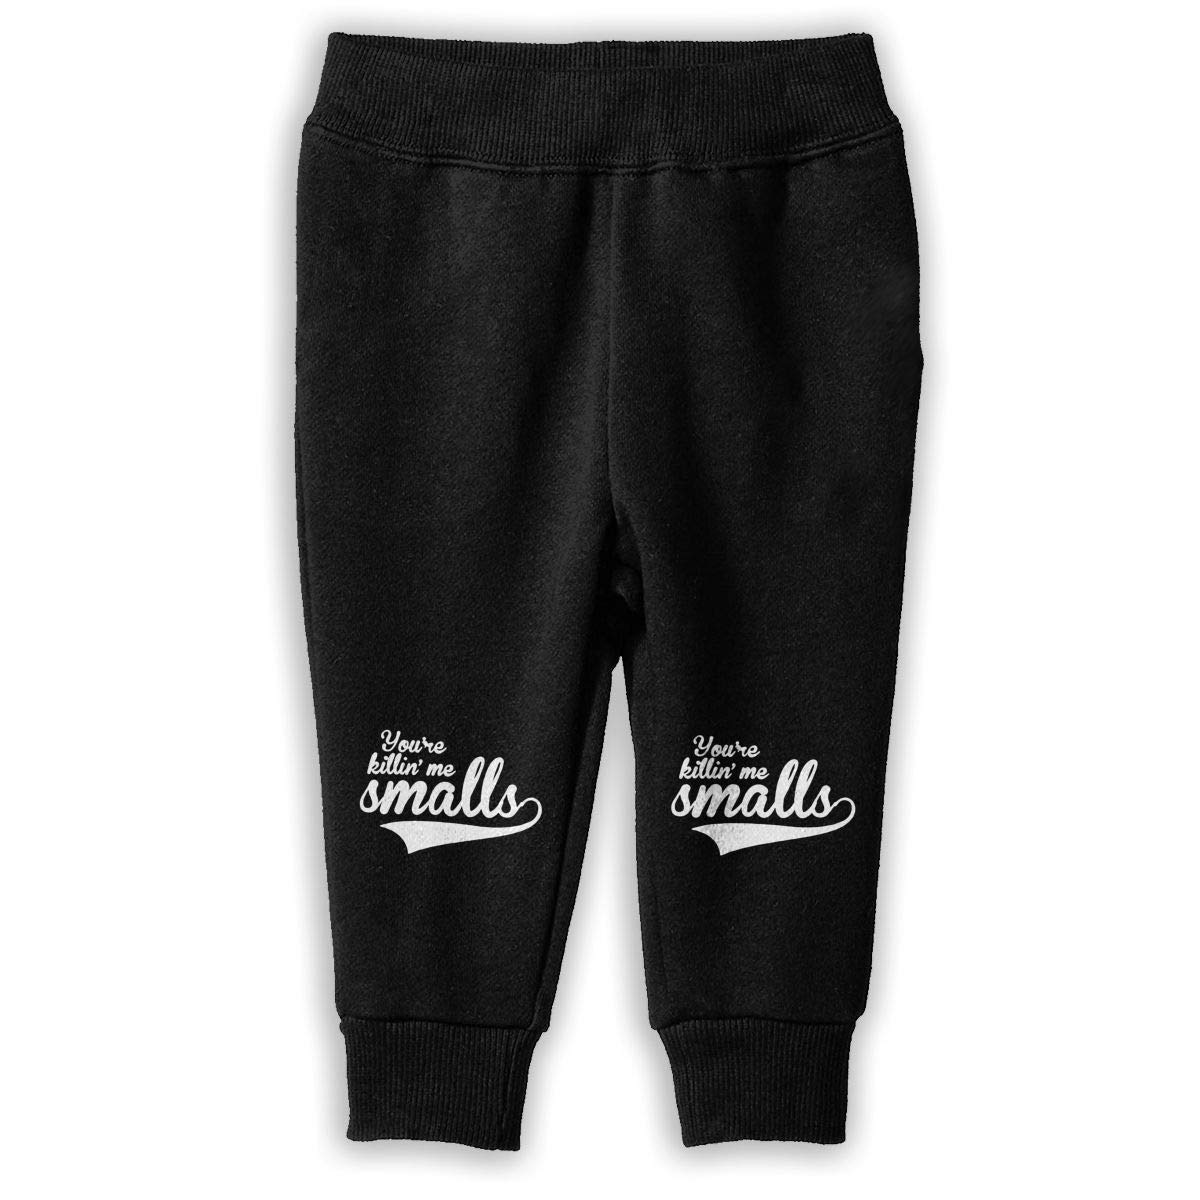 ShineFun Printed Youre Killing Me Smalls Childrens Boys /& Girls Unisex Sports Sweatpants